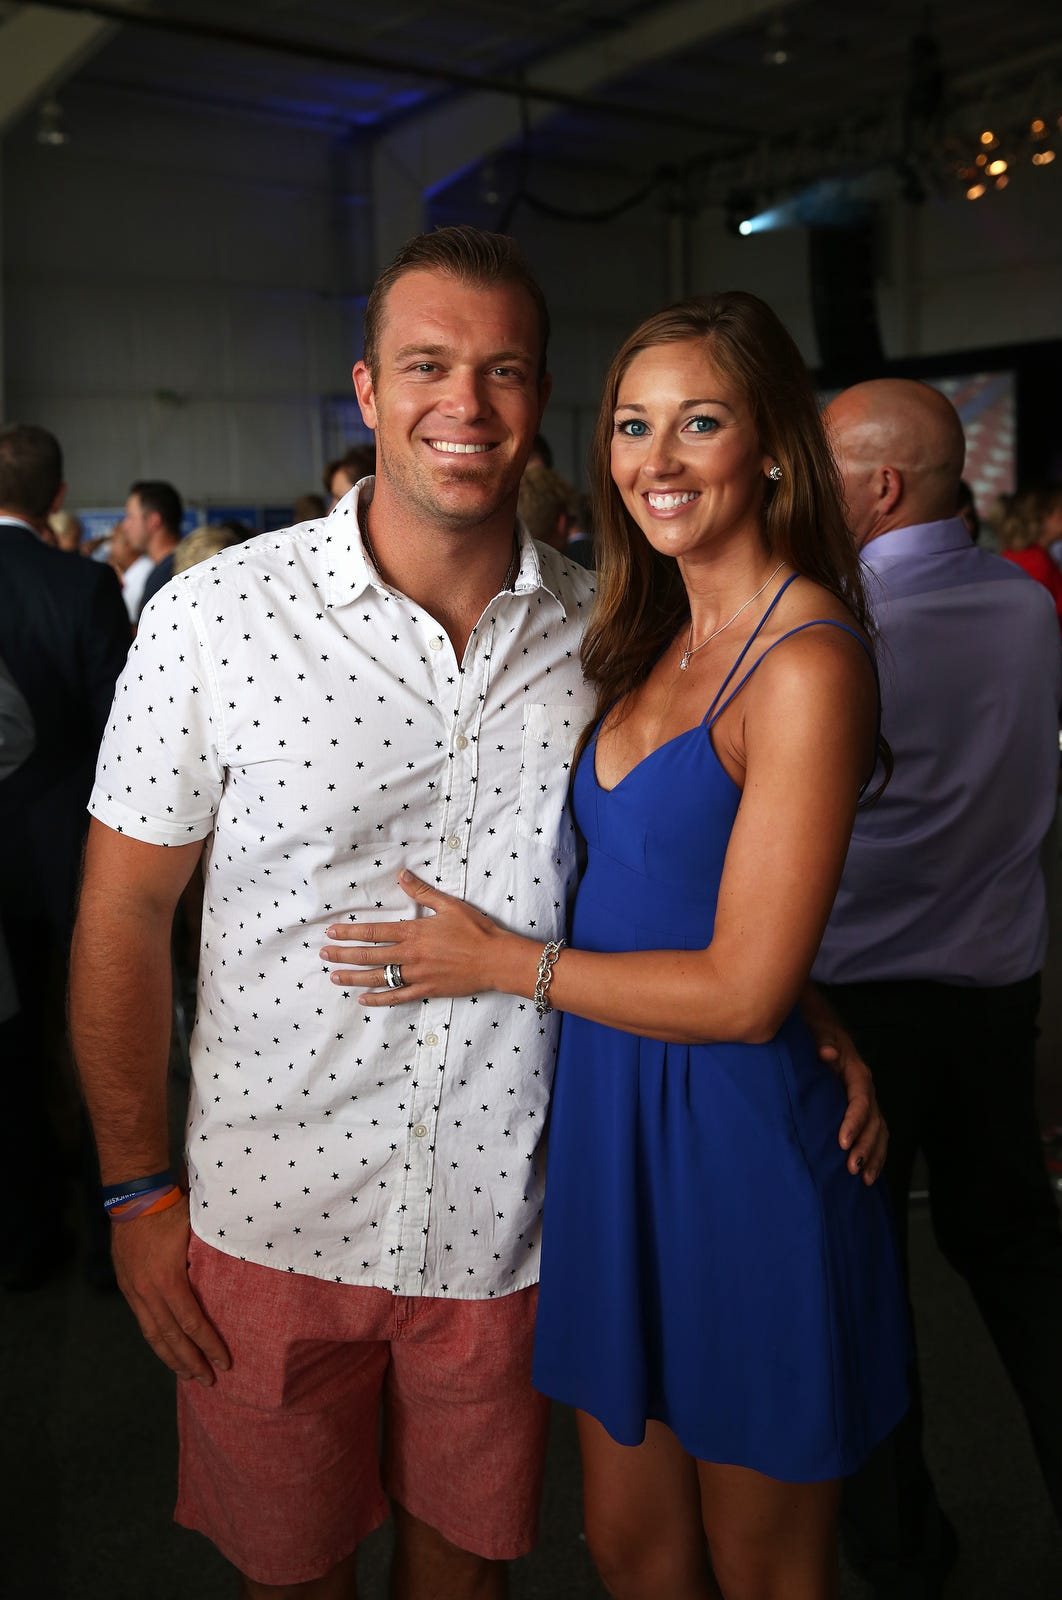 Former Colts player Matt Overton engaged to former Colts cheerleader Breanna Fonner